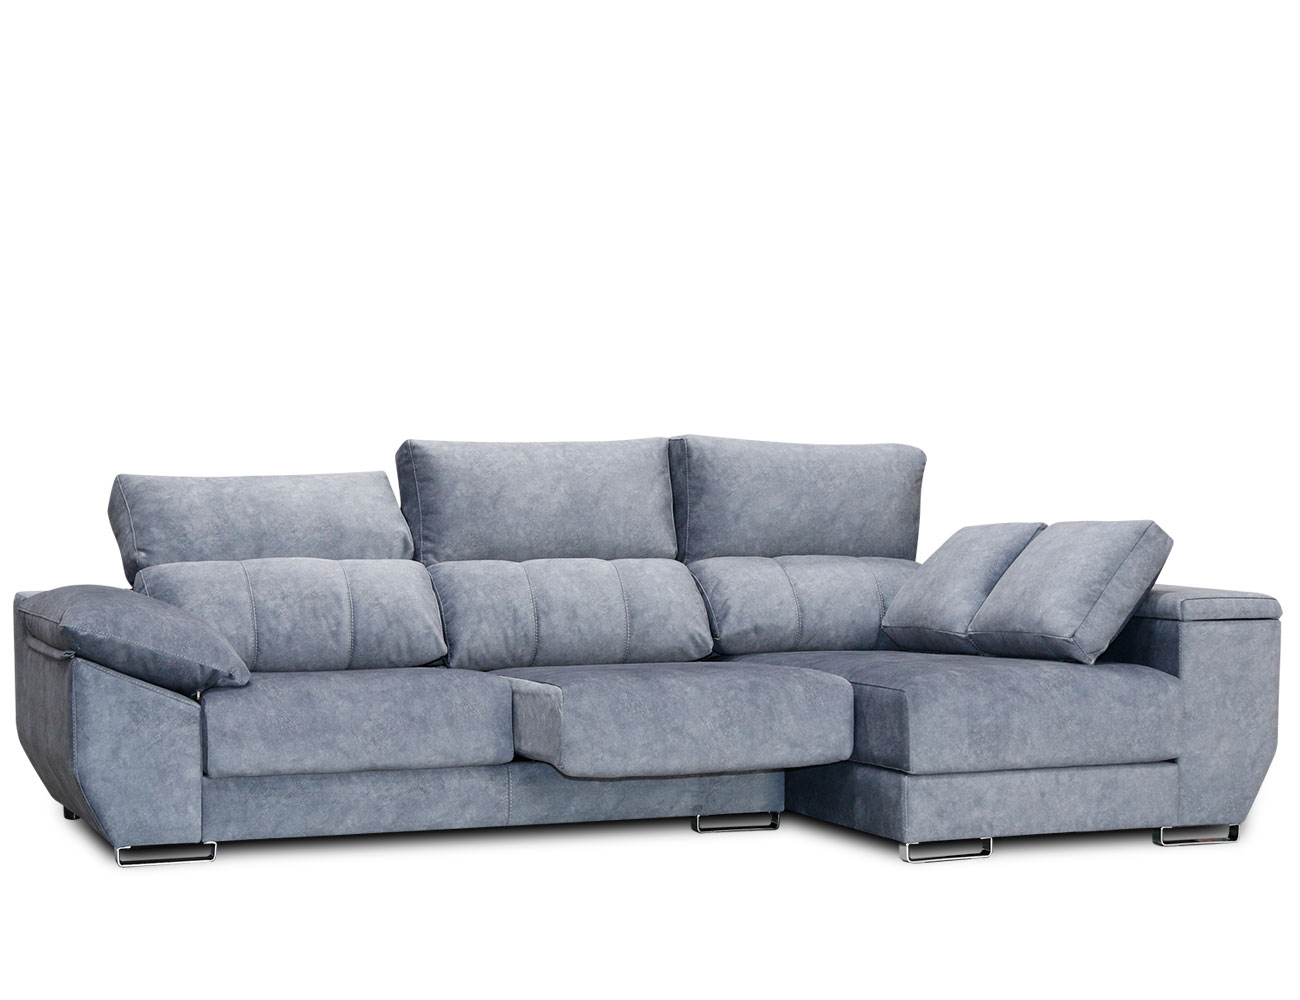 Sofa chaiselongue anti manchas gama alta